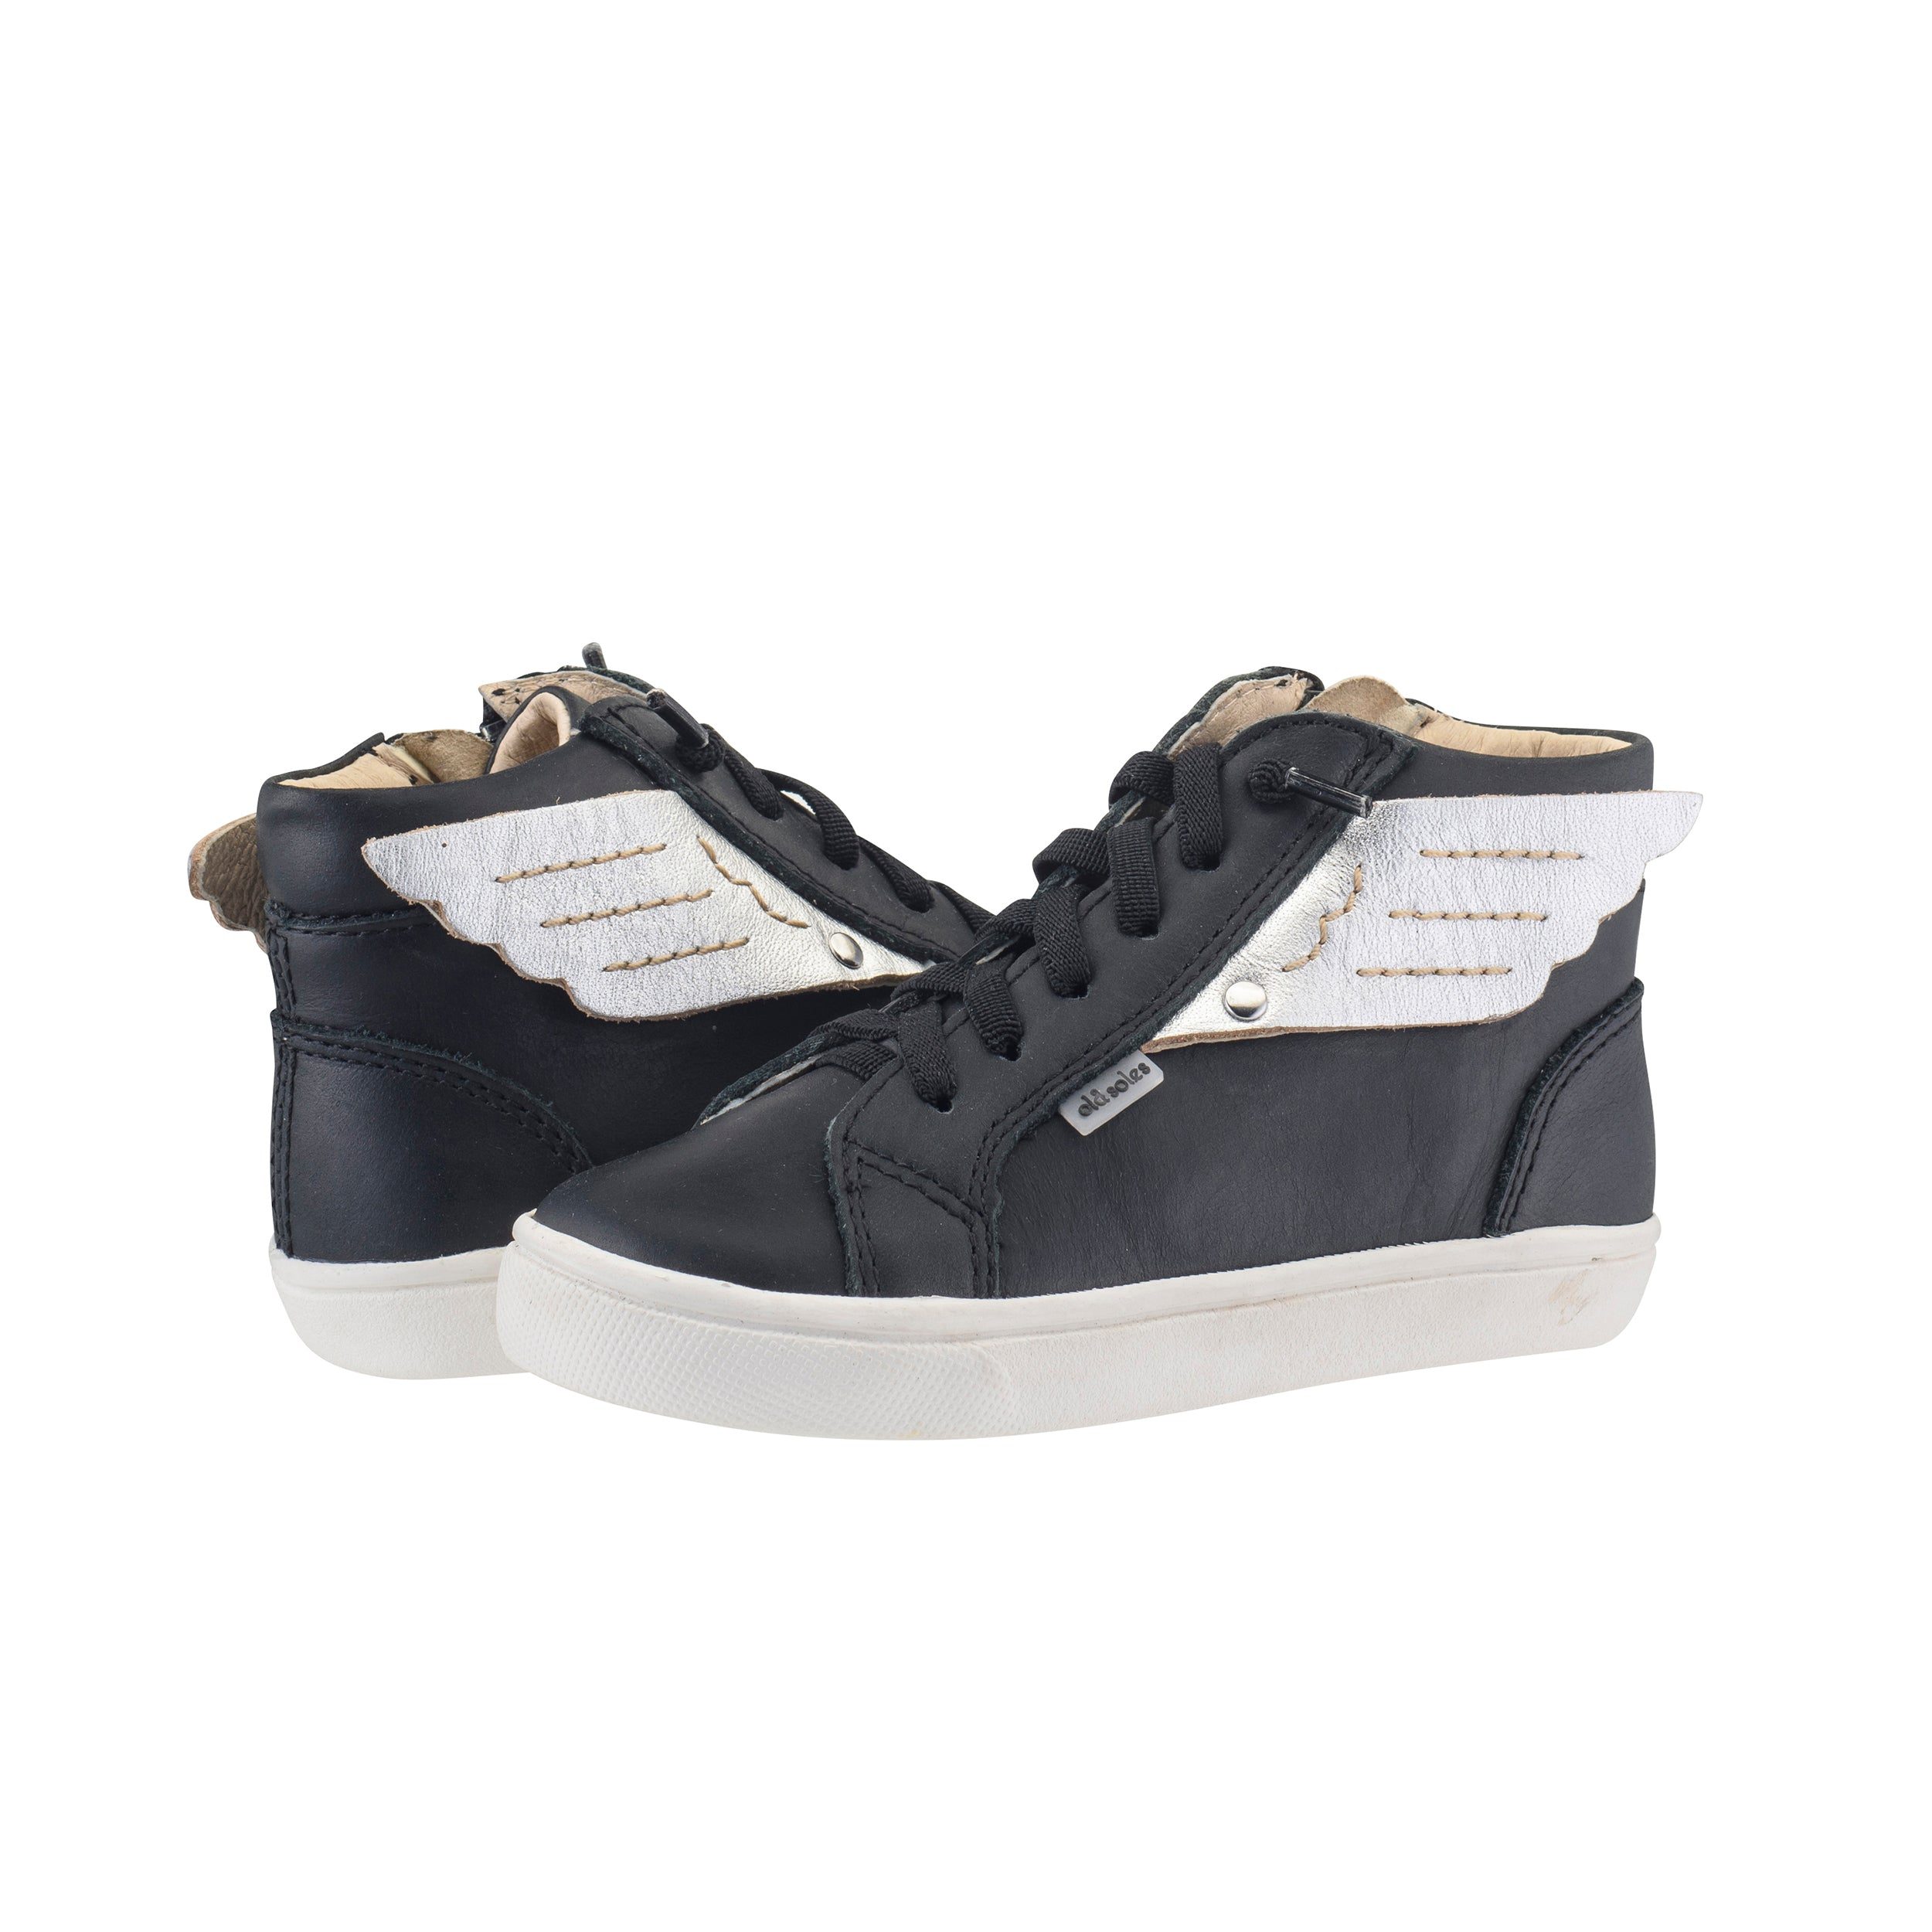 Local Wings -Black / Silver